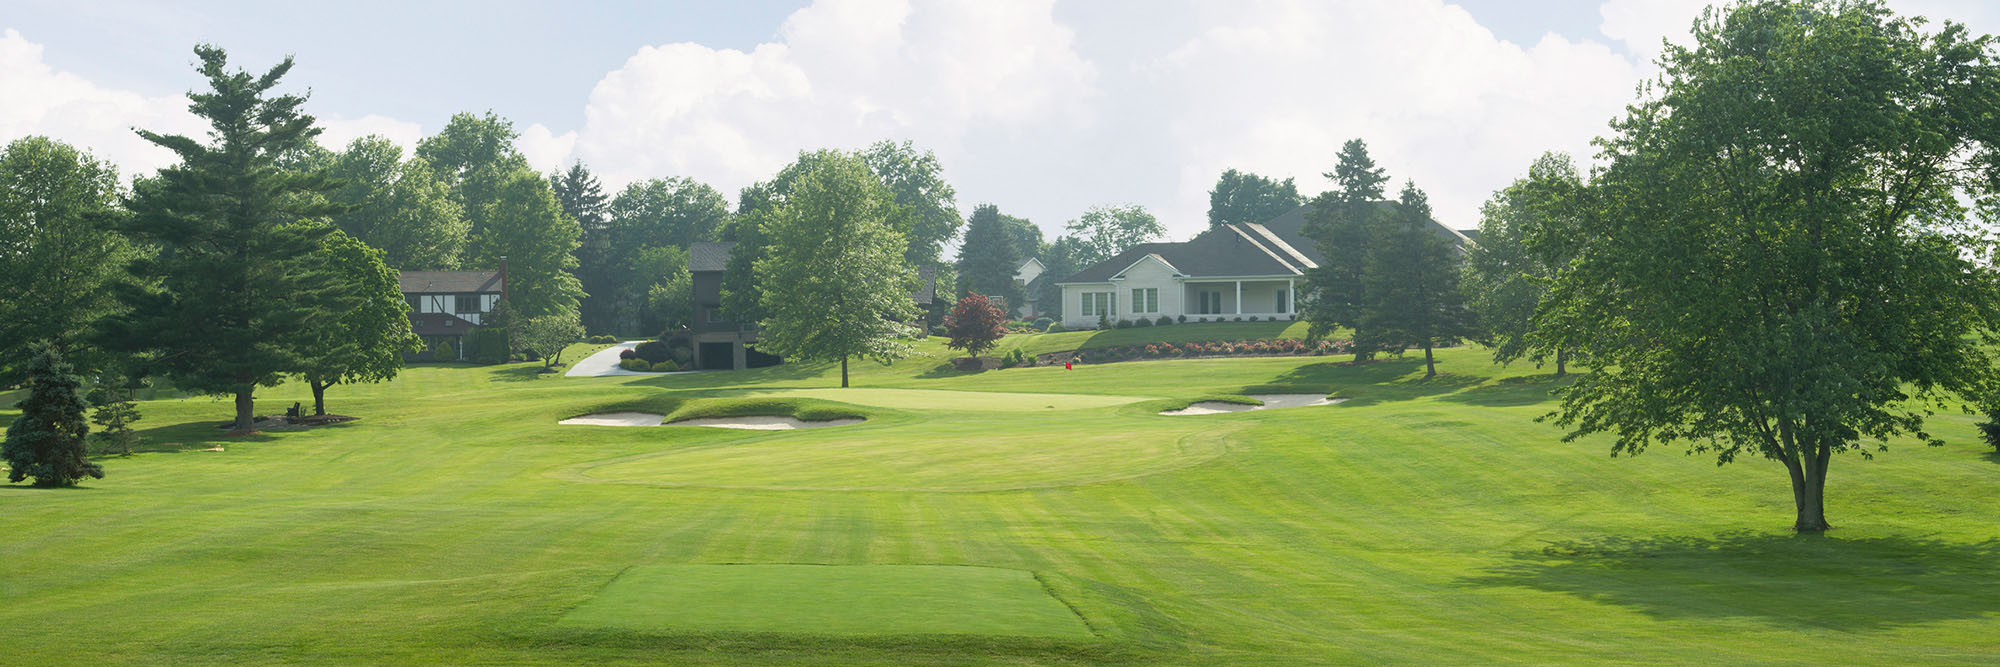 Golf Course Image - Out Door Country Club No. 2